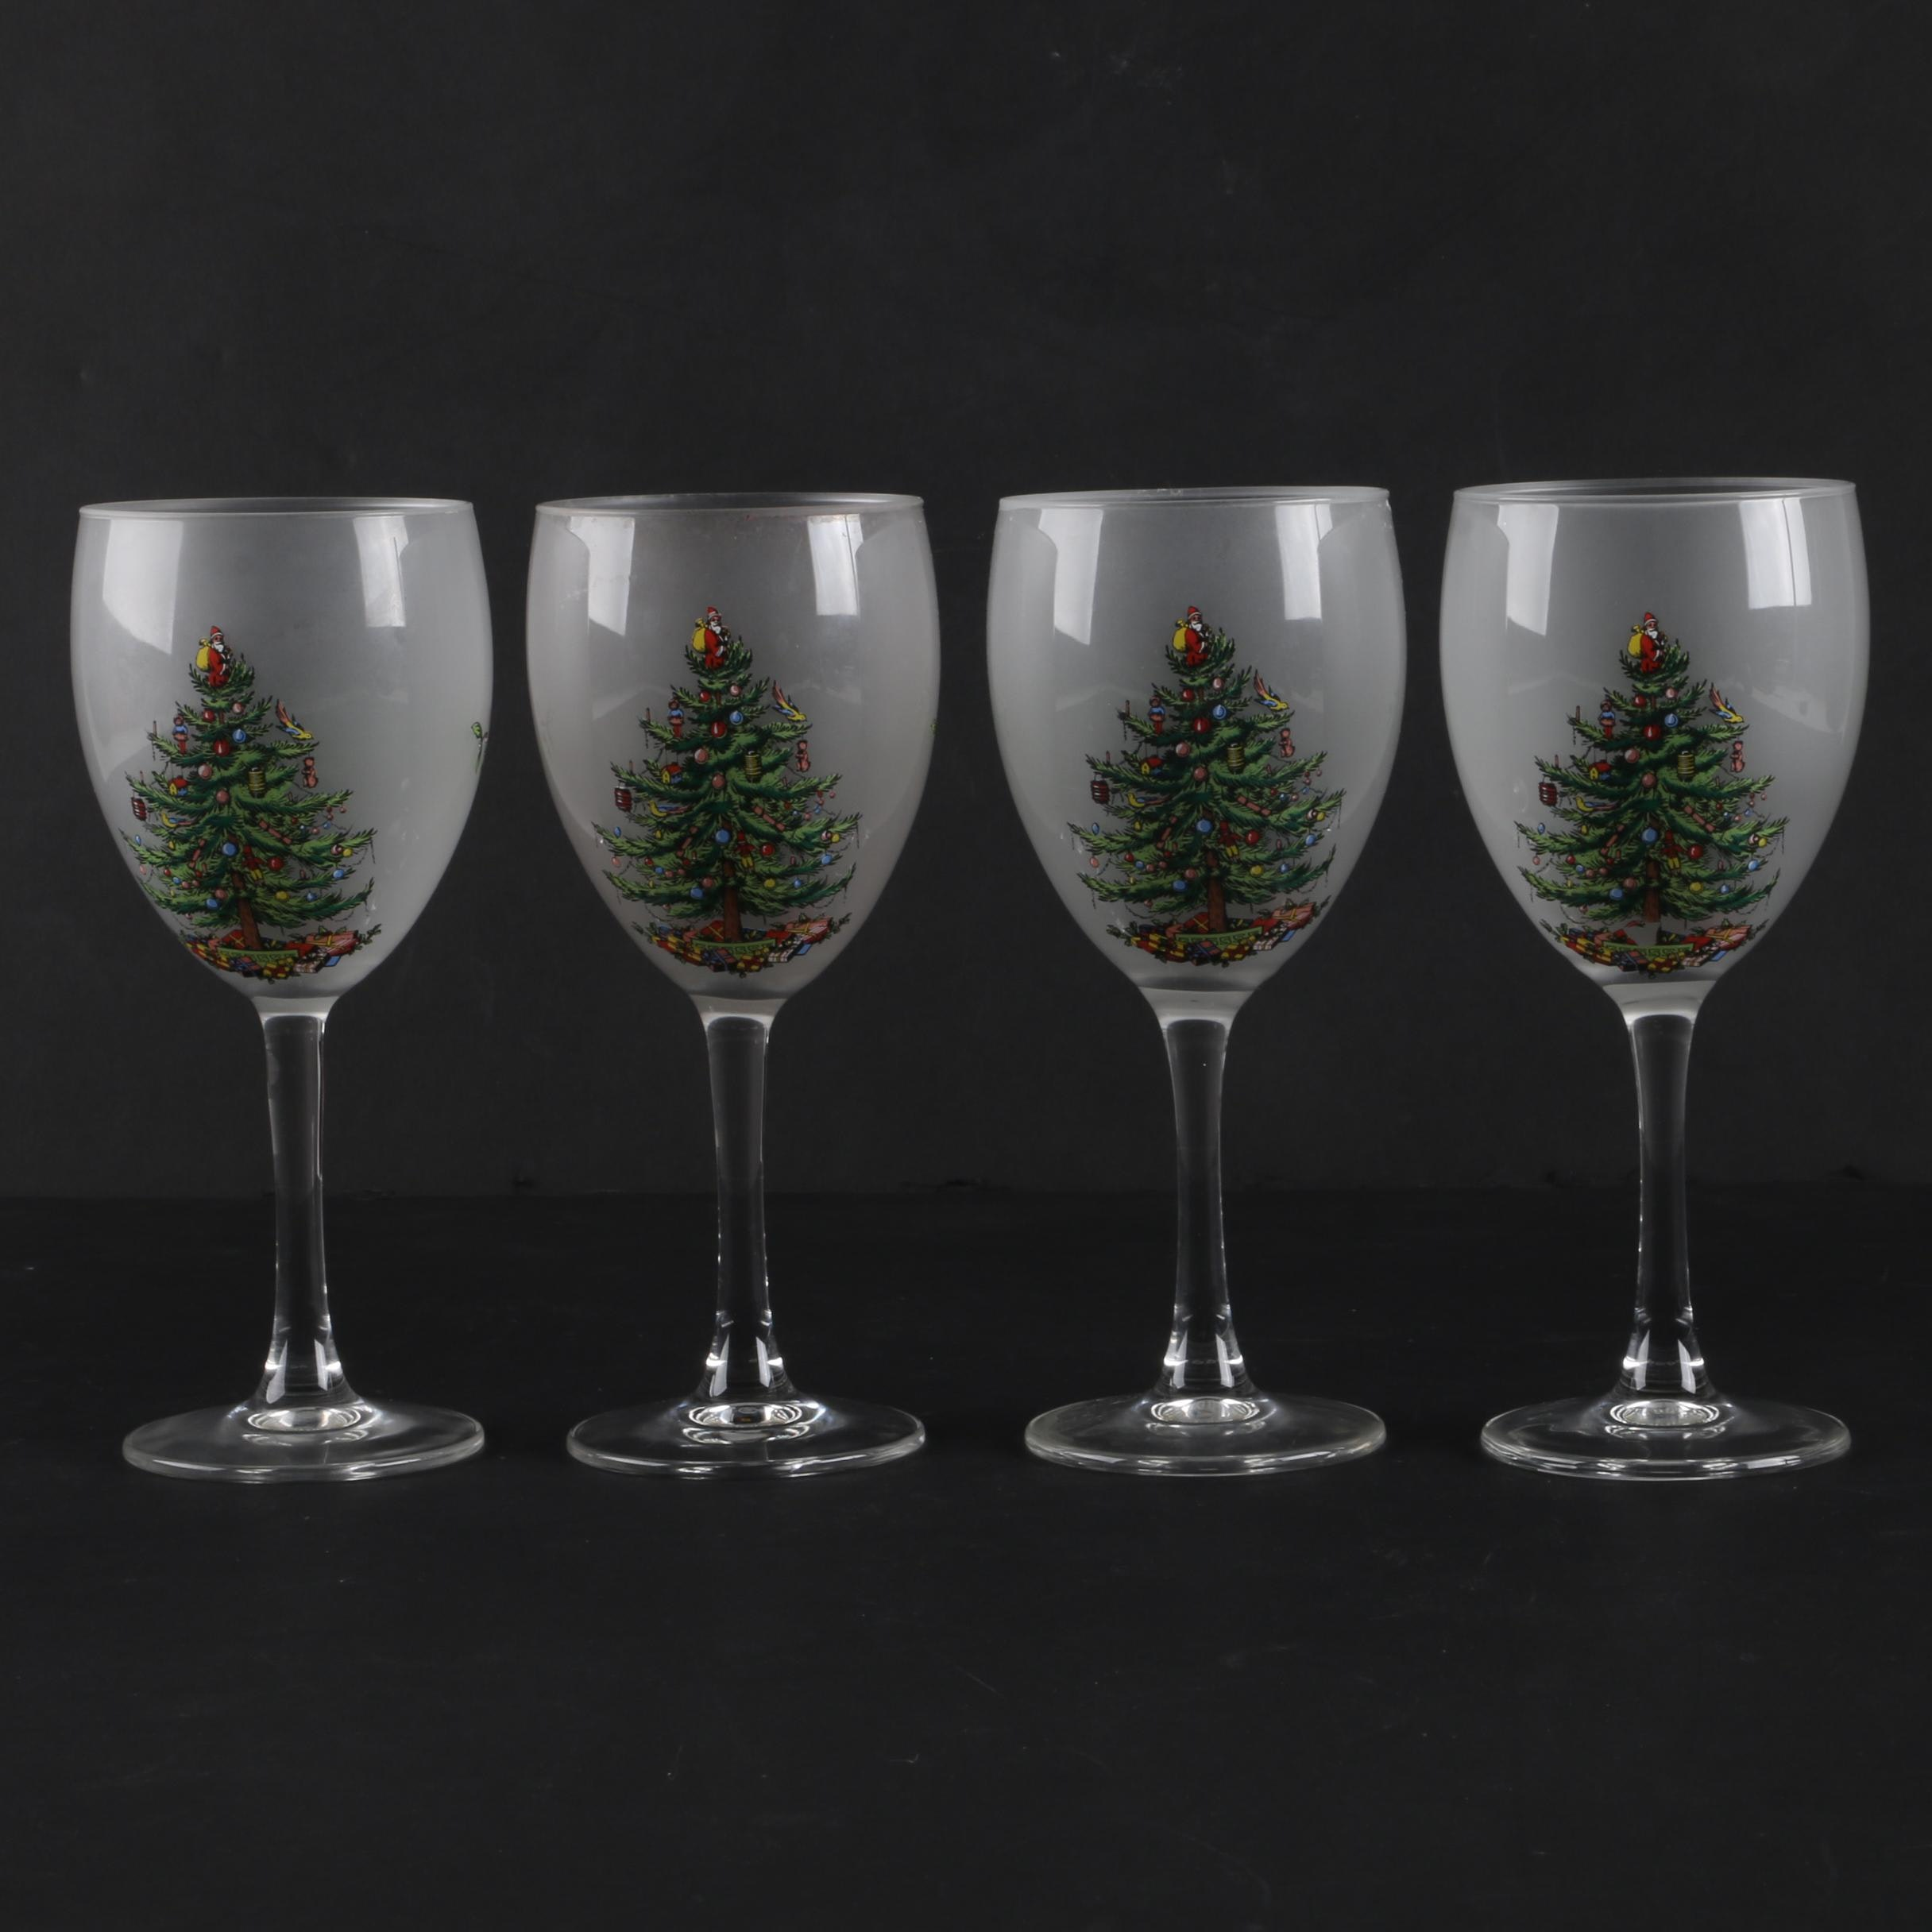 Spode 'Christmas Tree' Wine Glasses